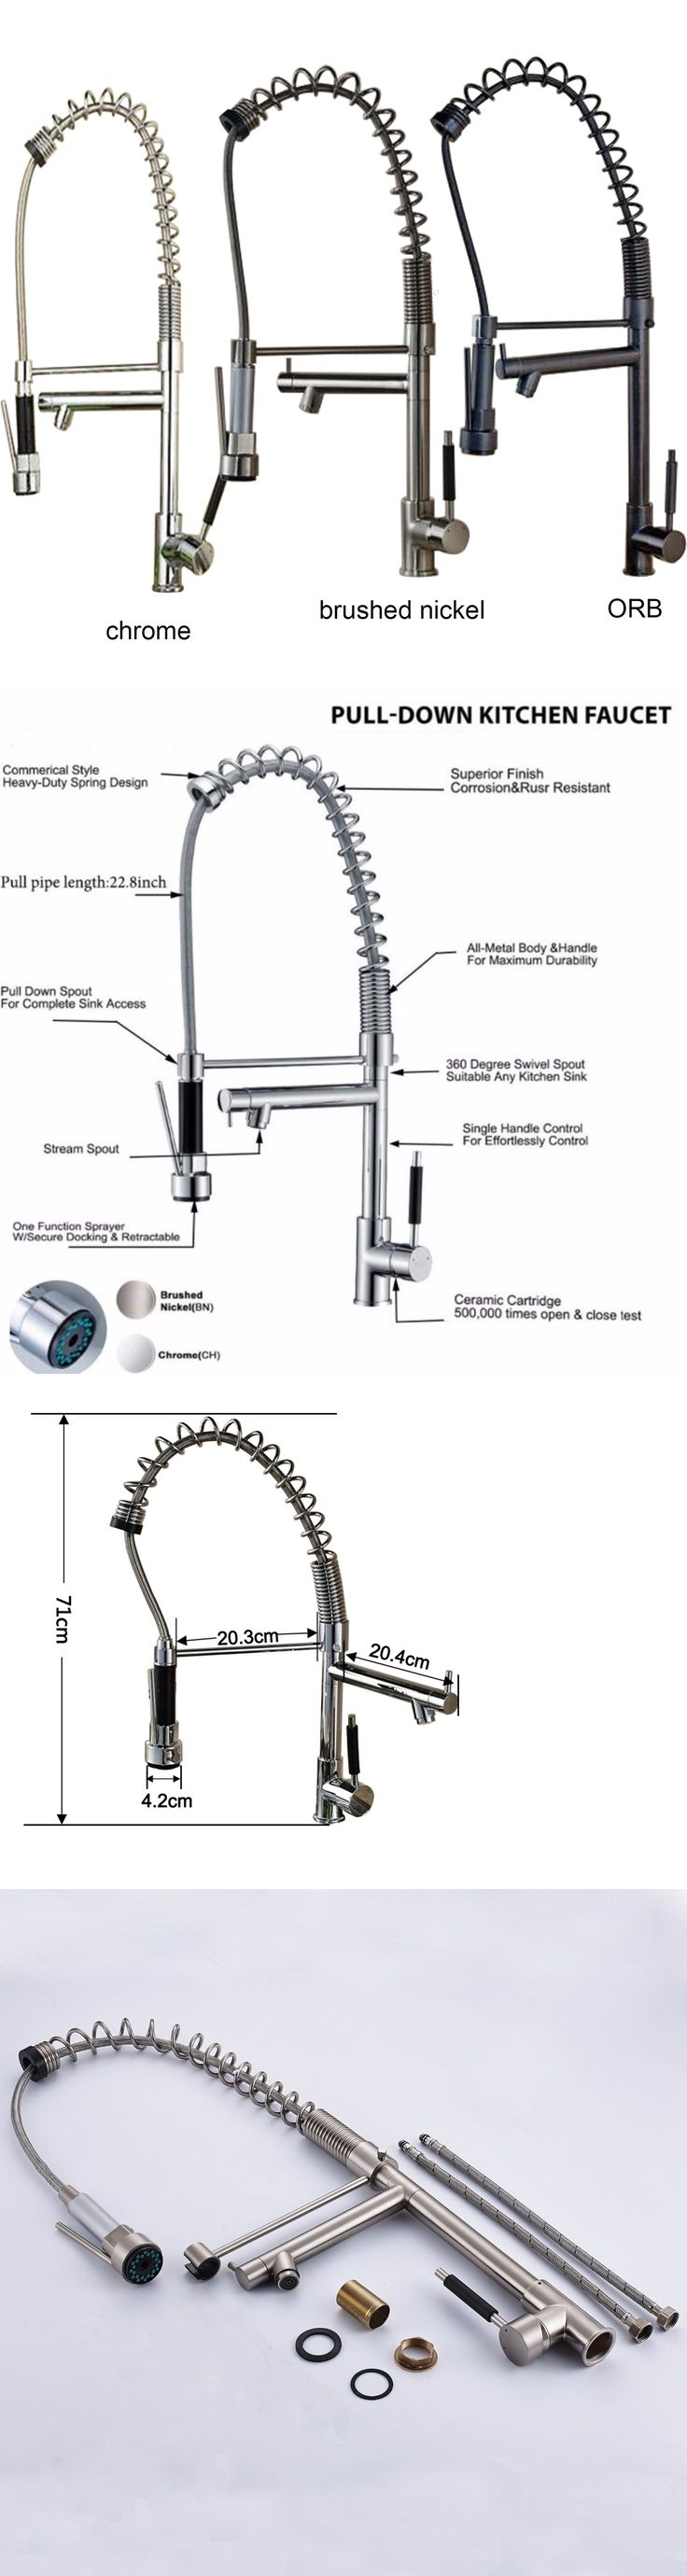 Bathroom sink faucet one hole double handle basin mixer tap ebay - Faucets 42024 Tall Spring Pull Down Kitchen Faucet Single Handle Hole Vessel Sink Mixer Tap